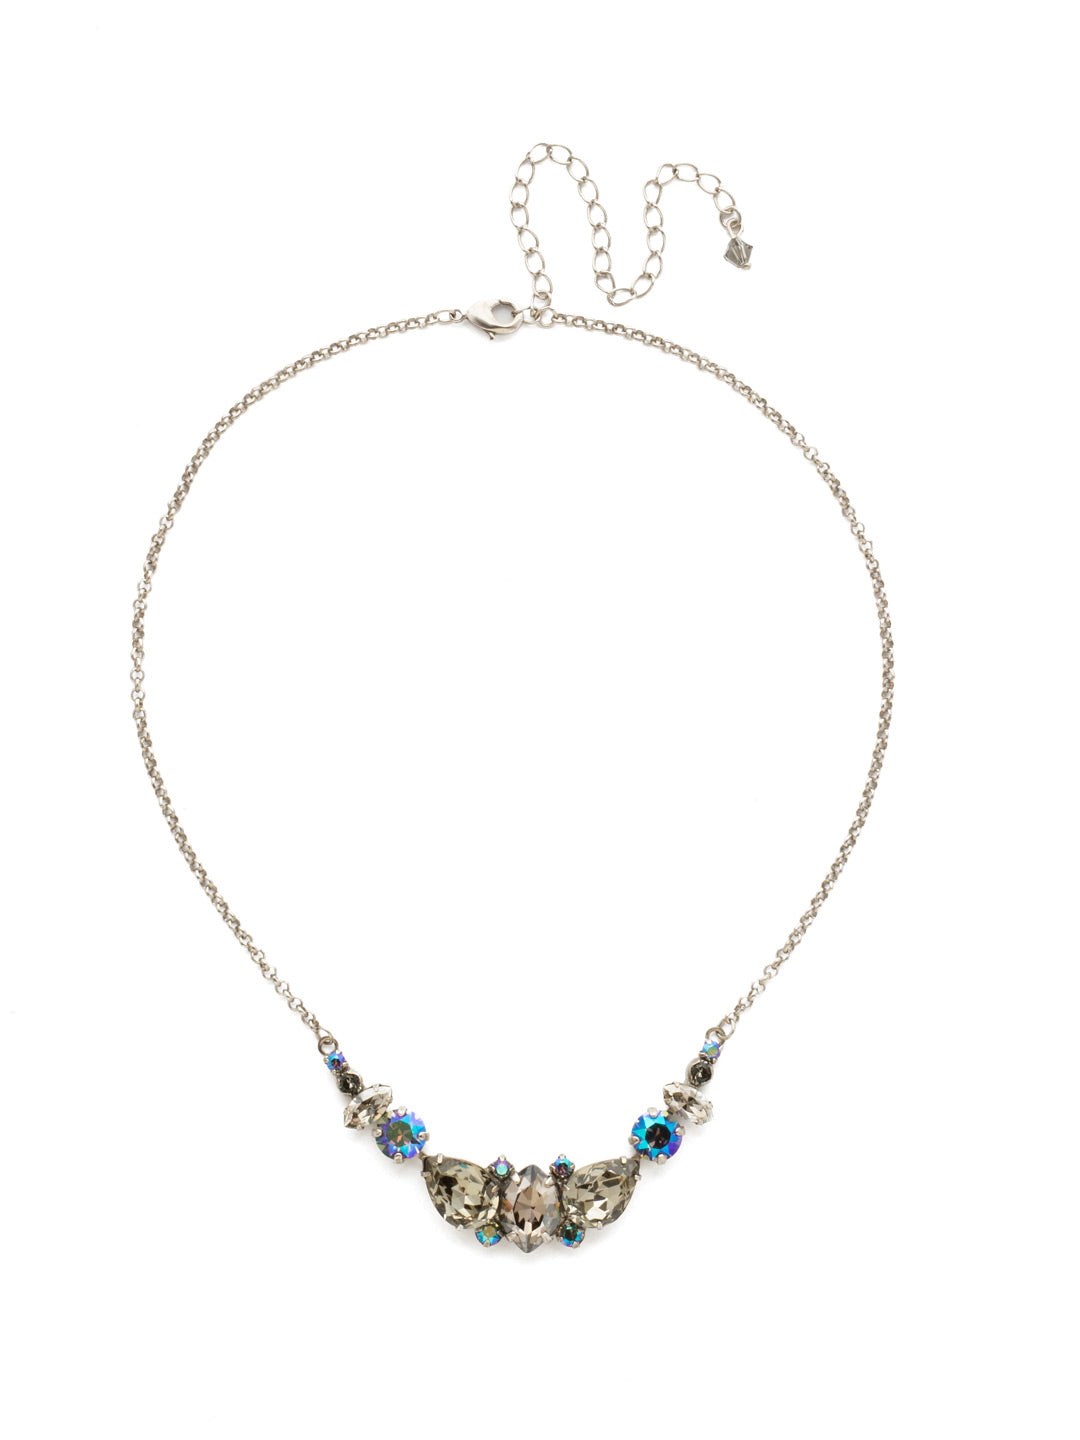 Crysanthemum Statement Necklace - NDN4ASCRO